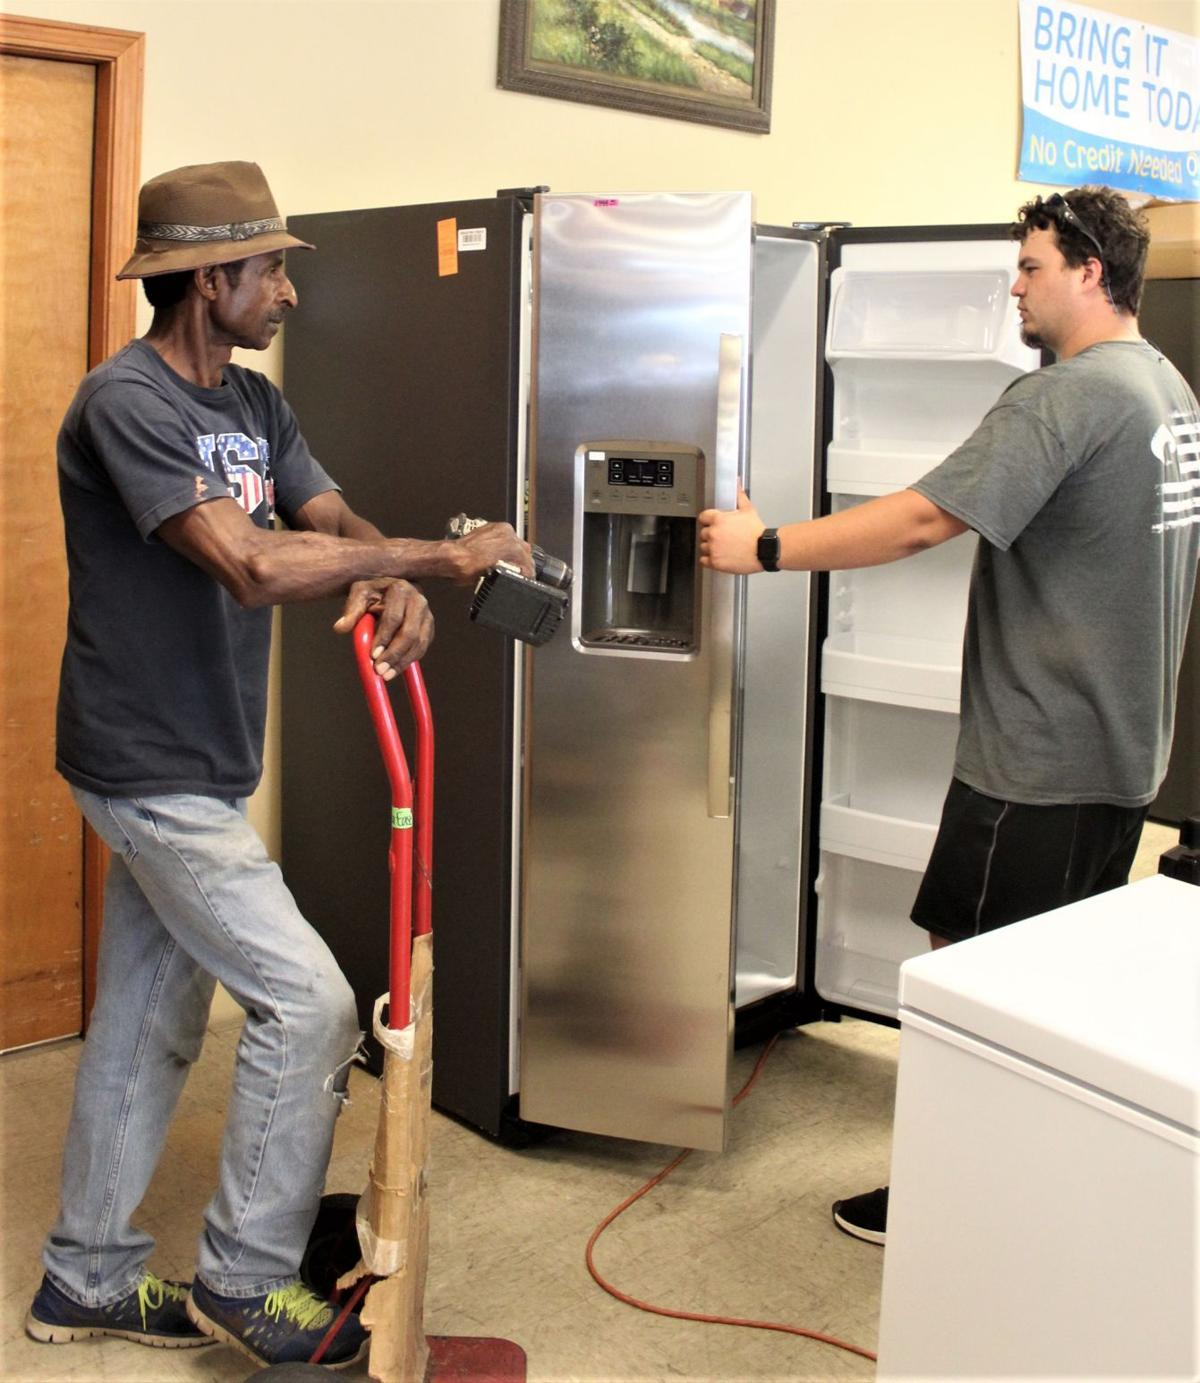 mcj-2020-09-09-news-business-afam-fridge